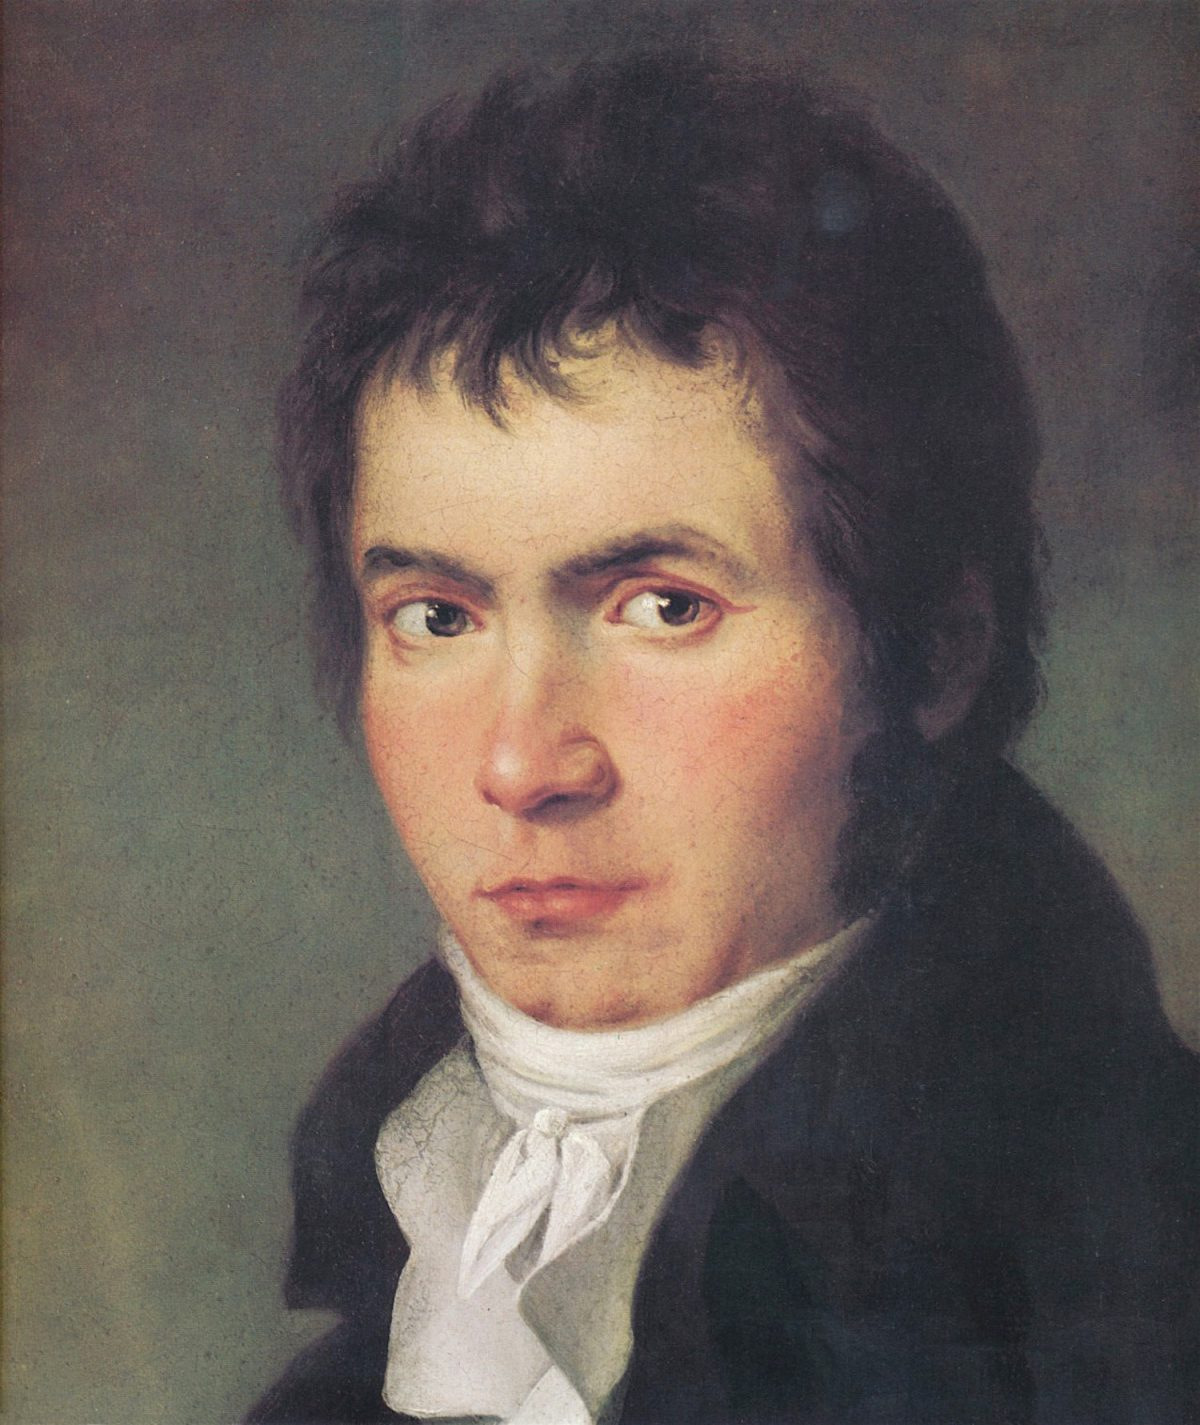 Beethoven, music, portrait